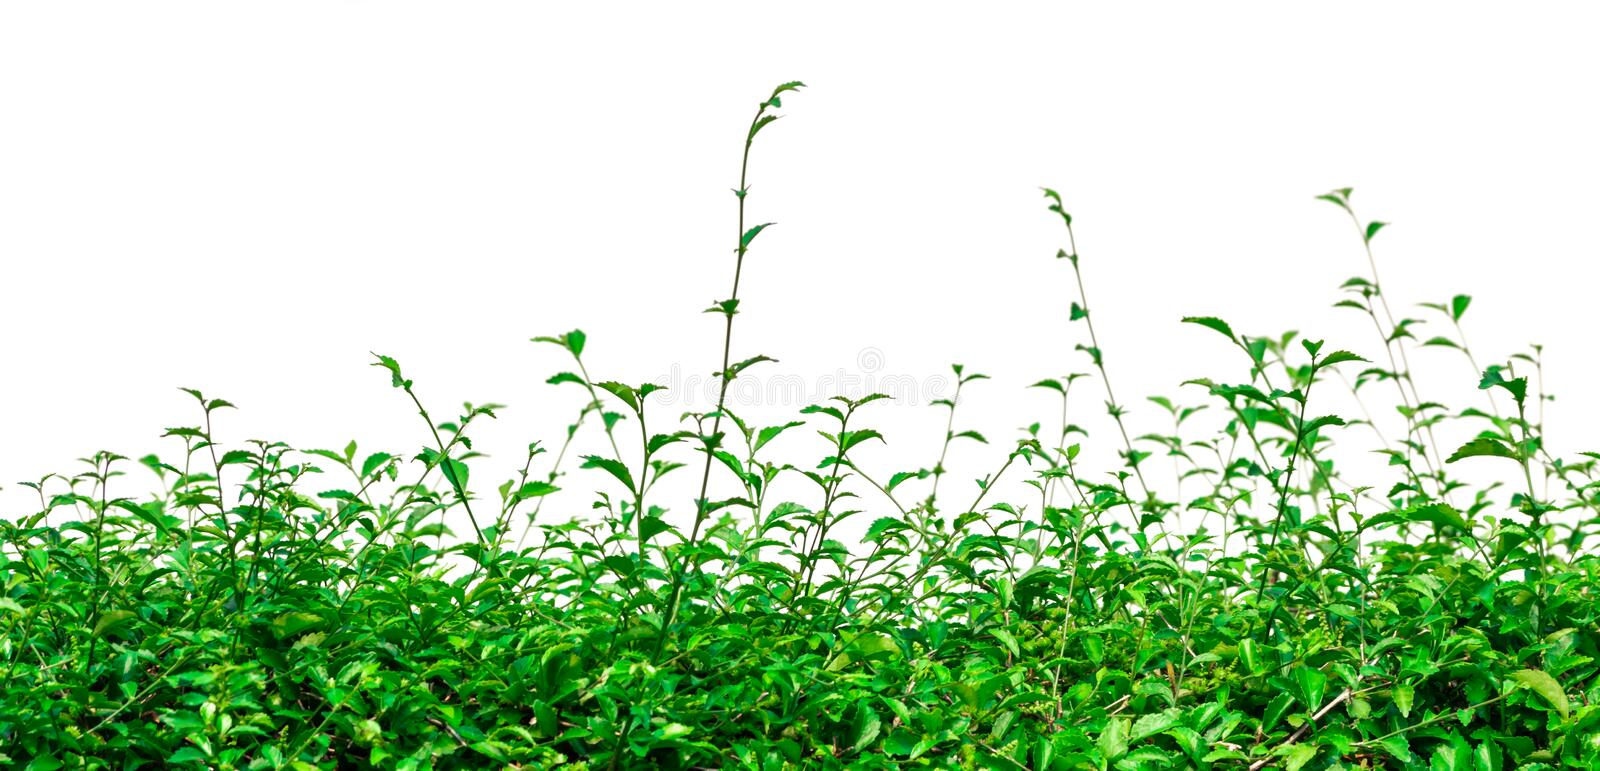 group of green plant isolated white background royalty free stock image